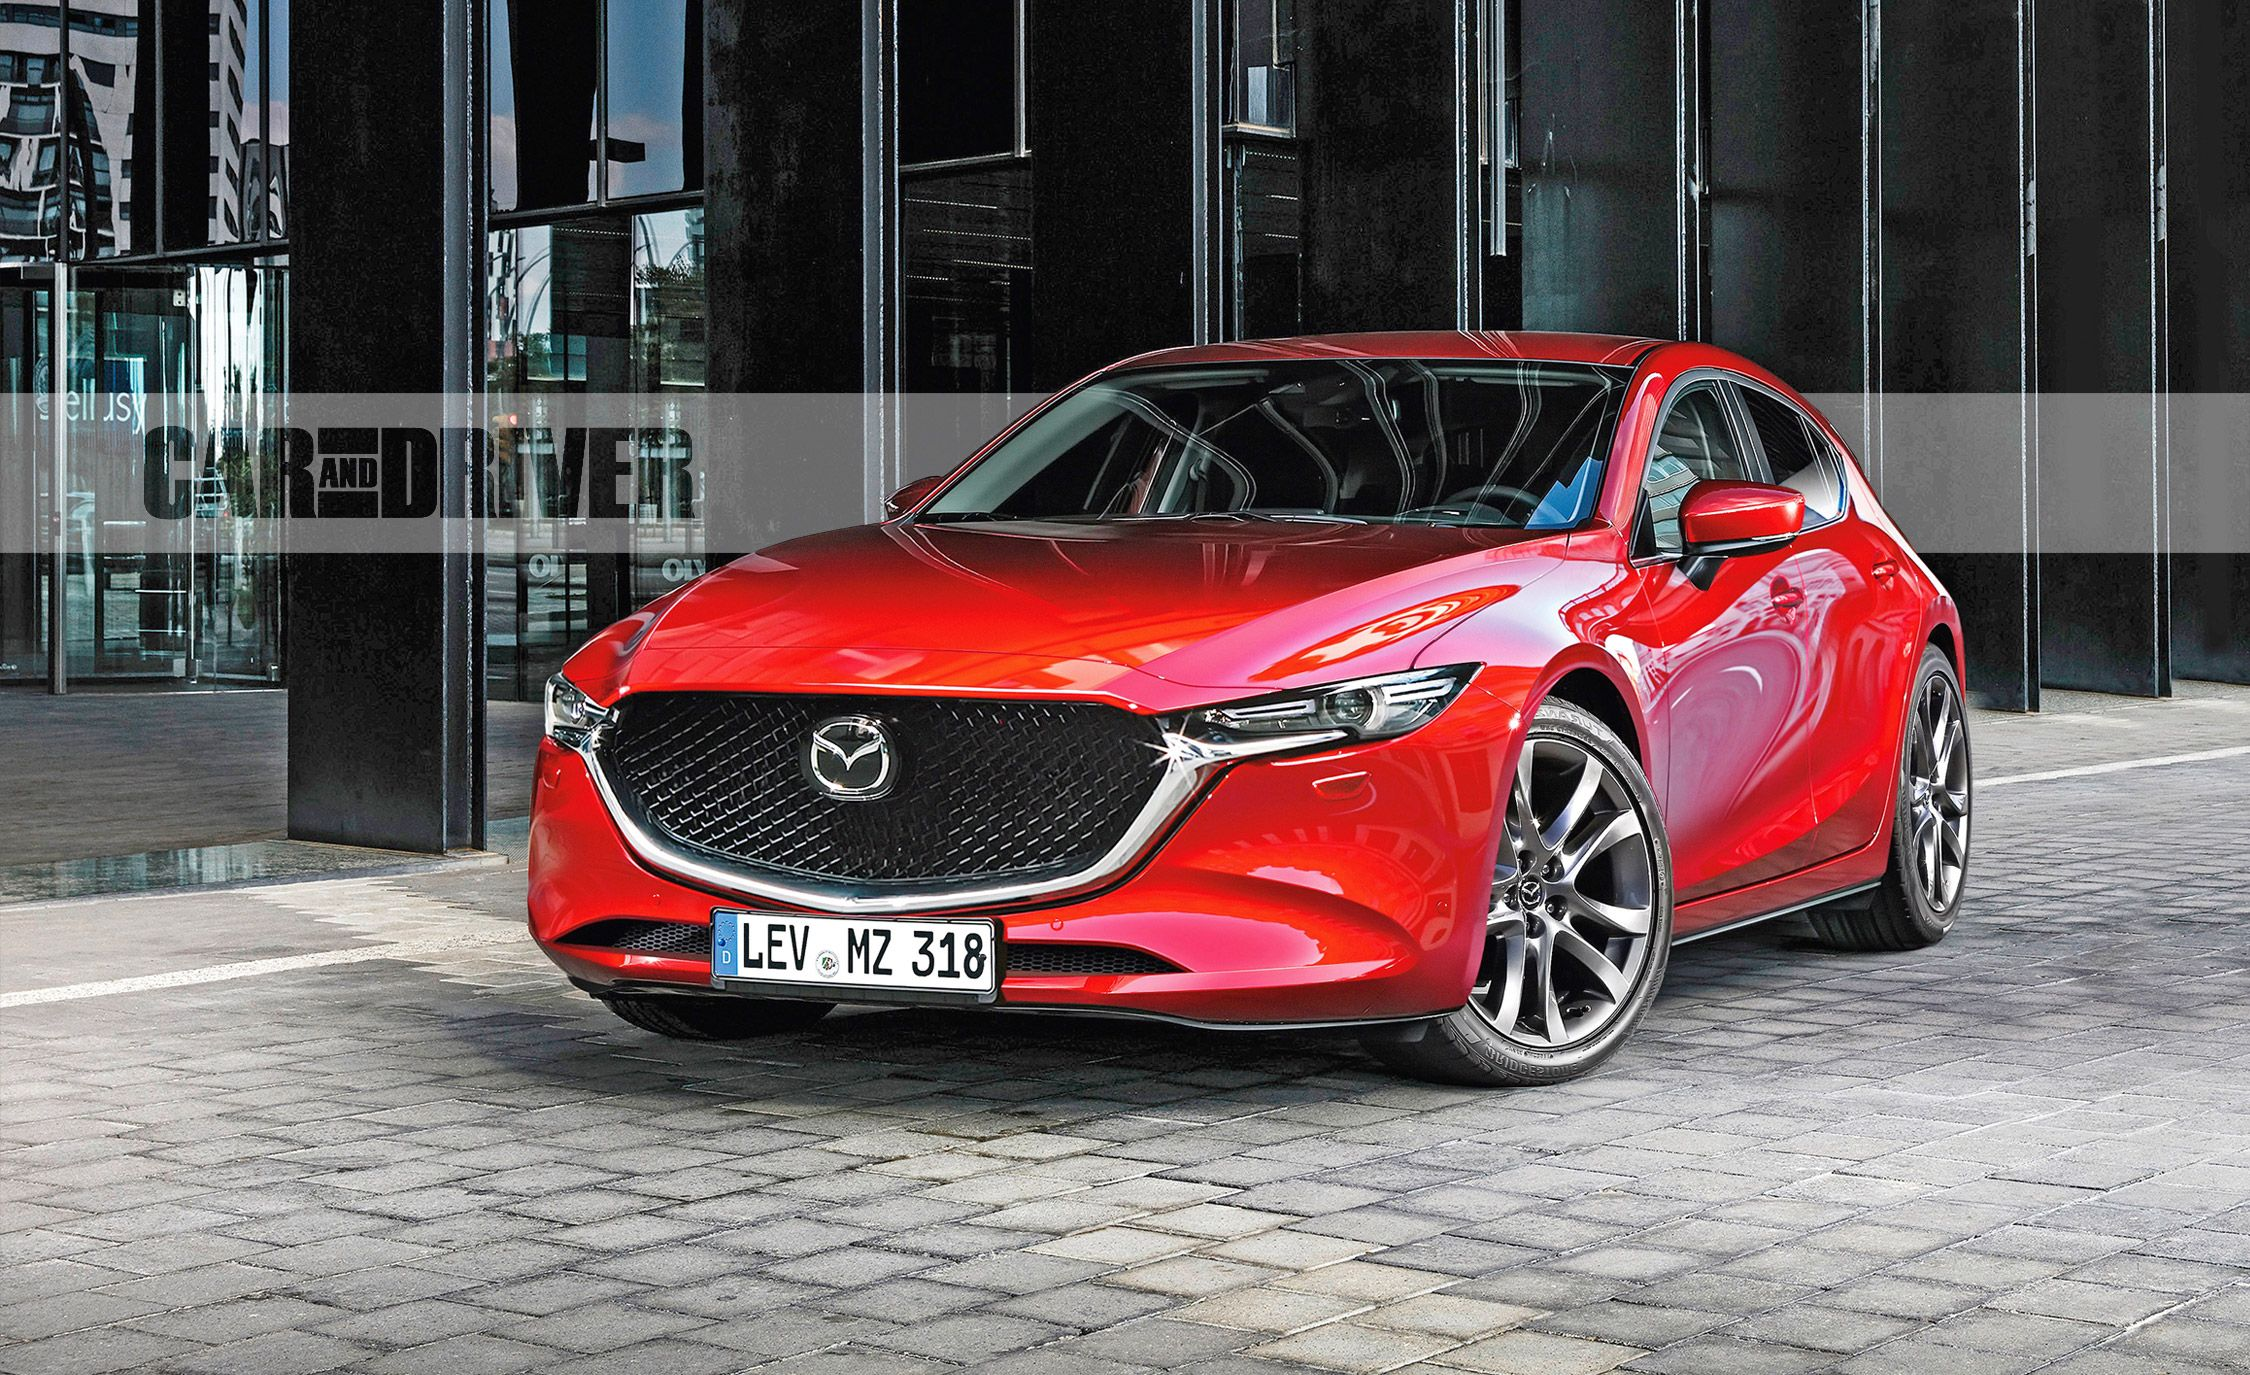 2017 Suvs Worth Waiting For >> 2020 Mazda 3: More Power and Efficiency for One of Our ...